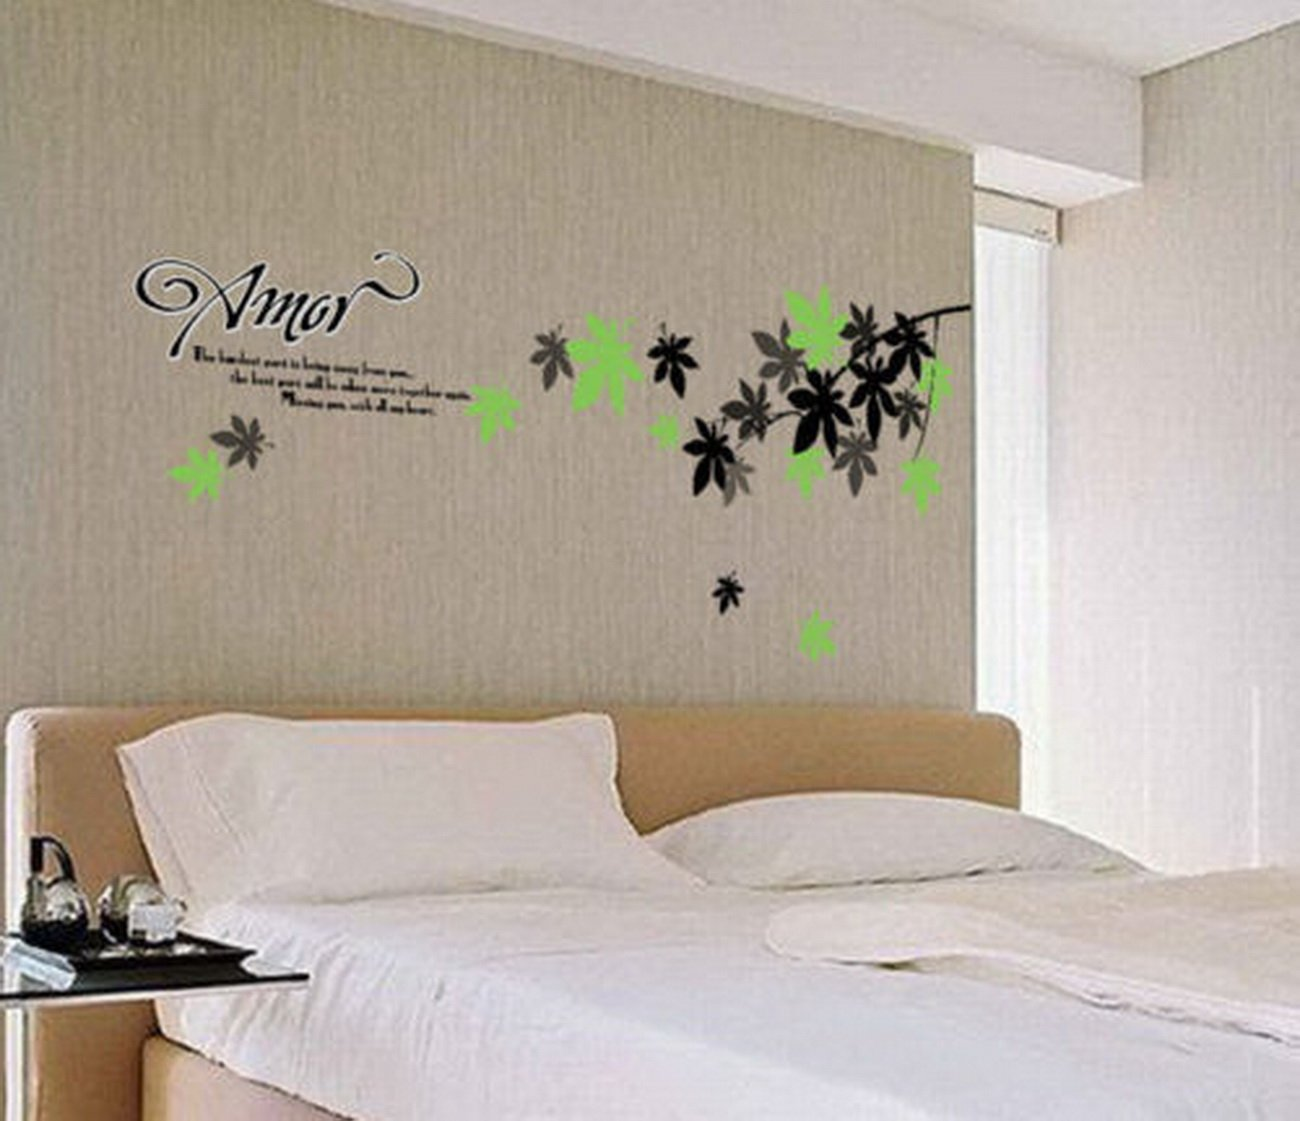 MiAnMiAn Amor Home Decals Removable Wall Stickers DIY Mural Art Decal Vinyl Wallpaper Decor